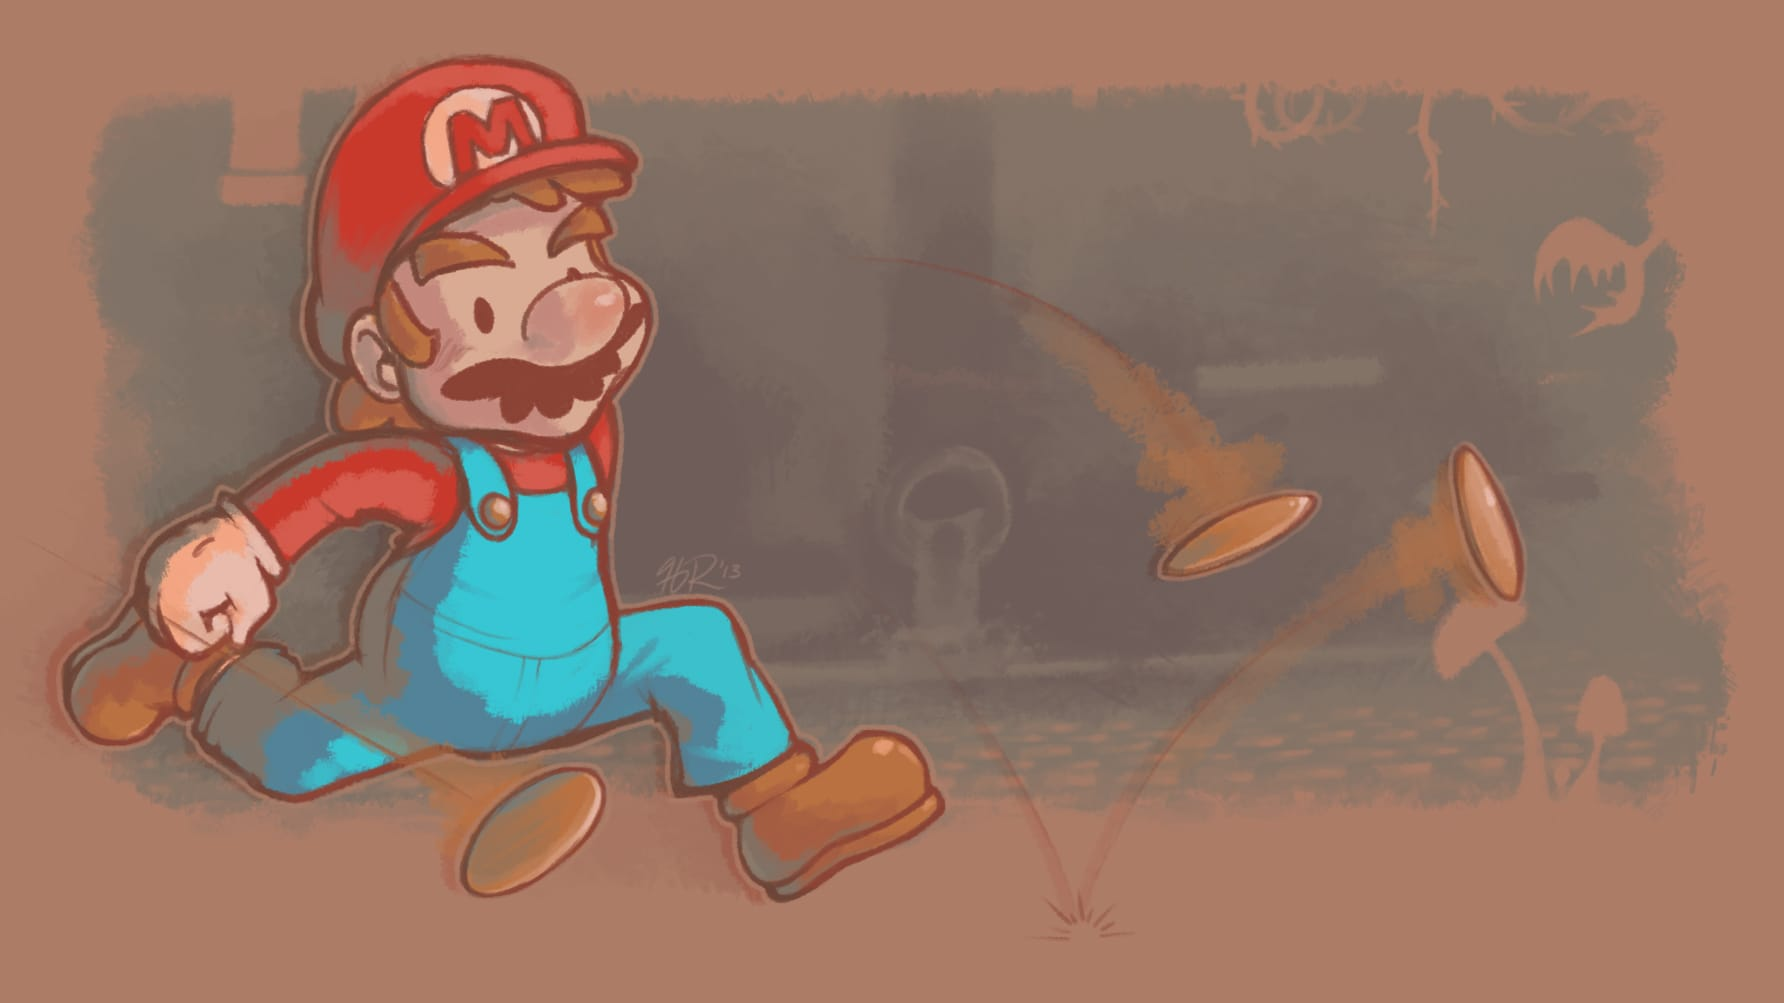 Mario chases after a coin in an underground setting.